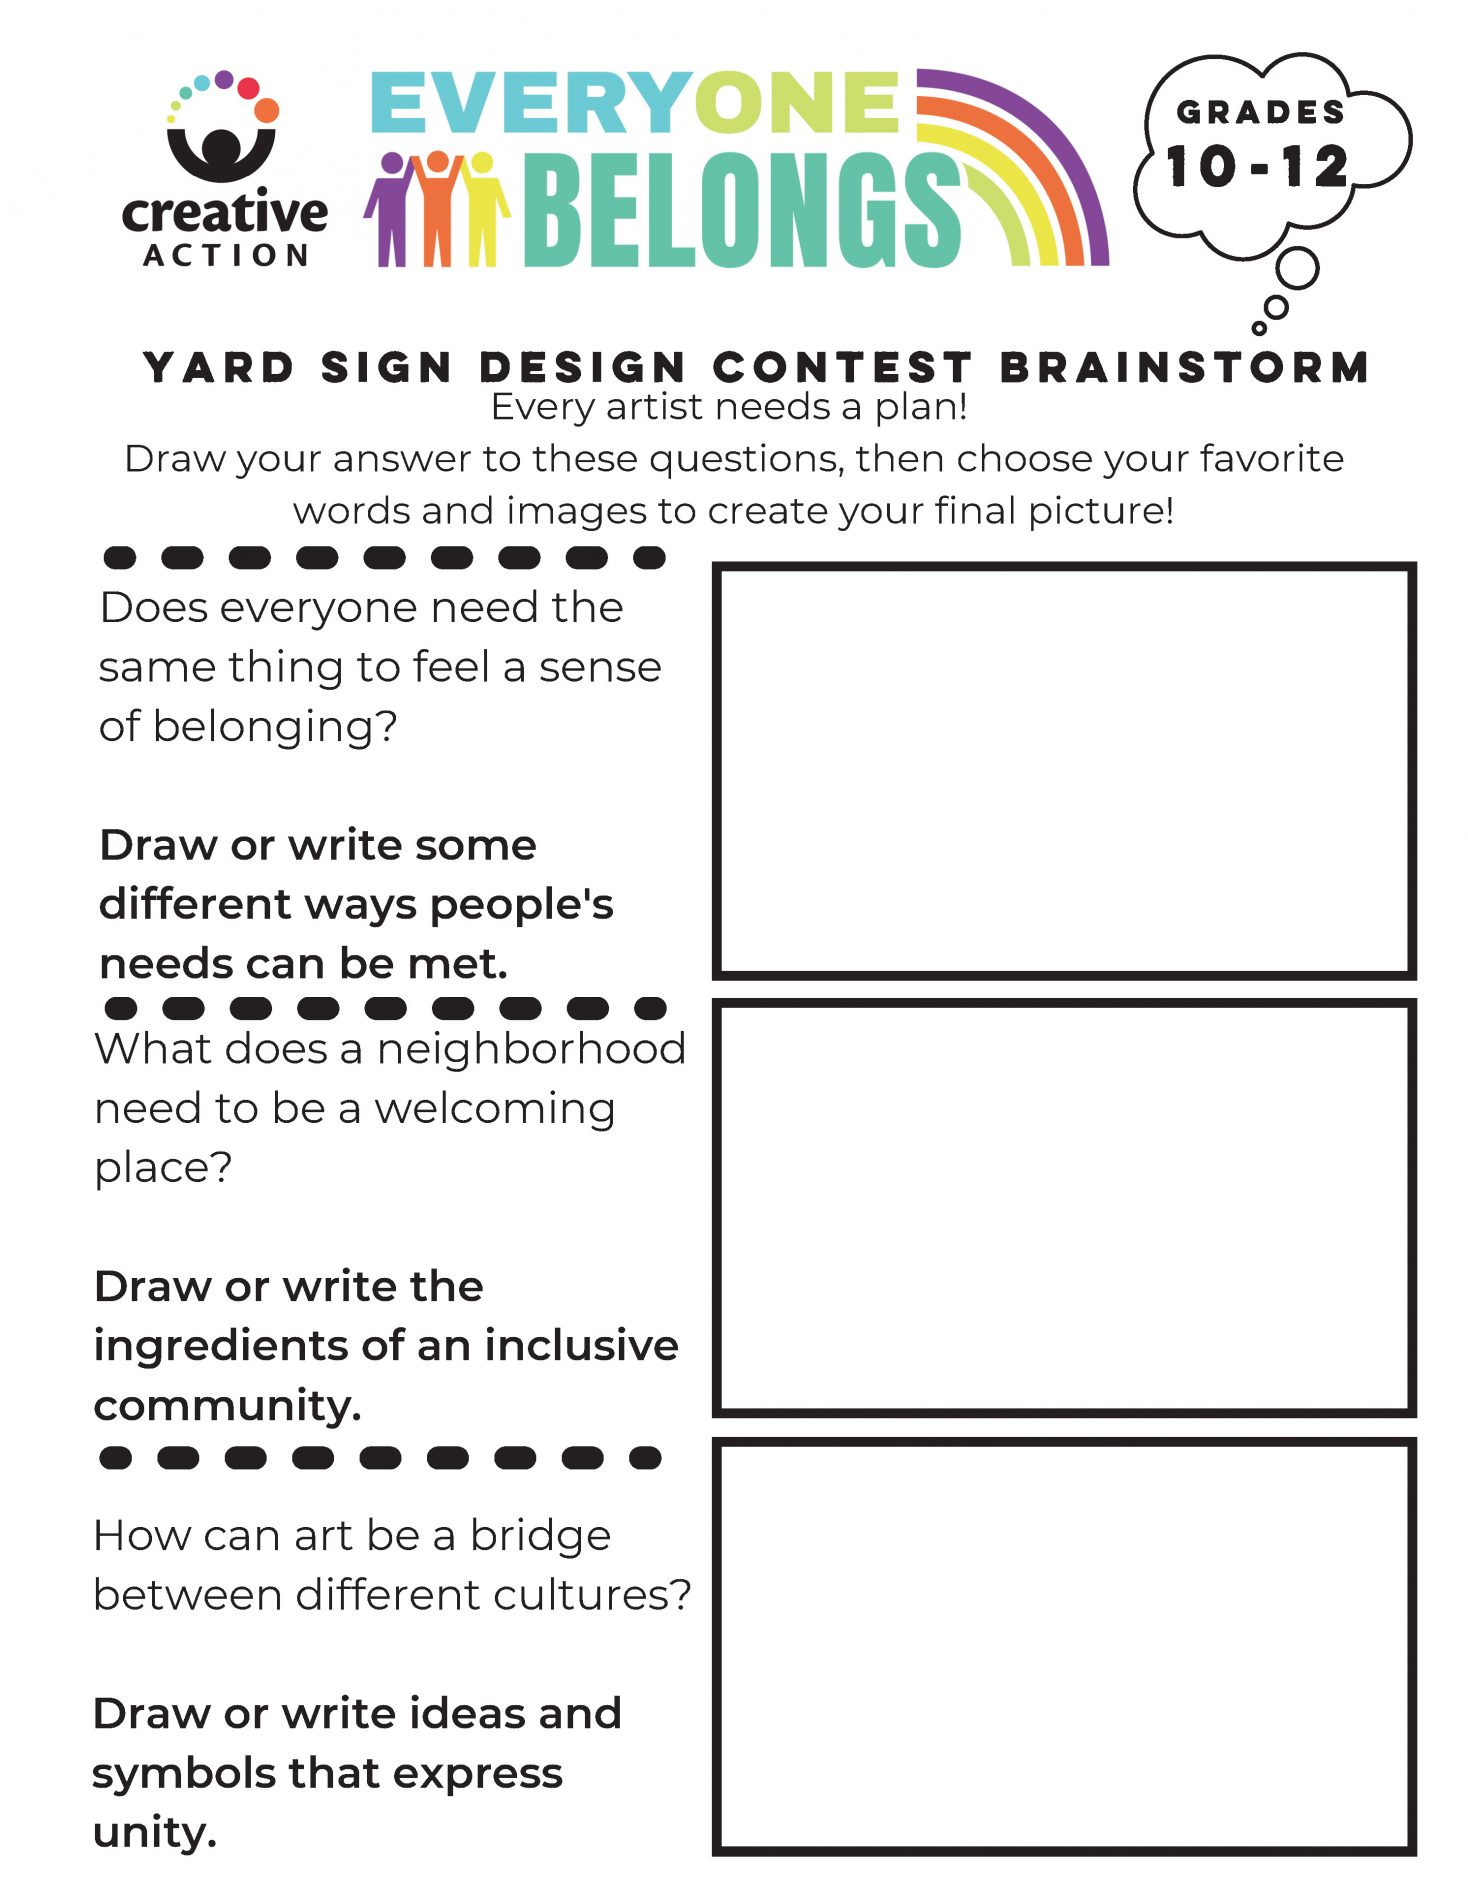 Brainstorm your yard sign worksheet for 10th - 12th grades